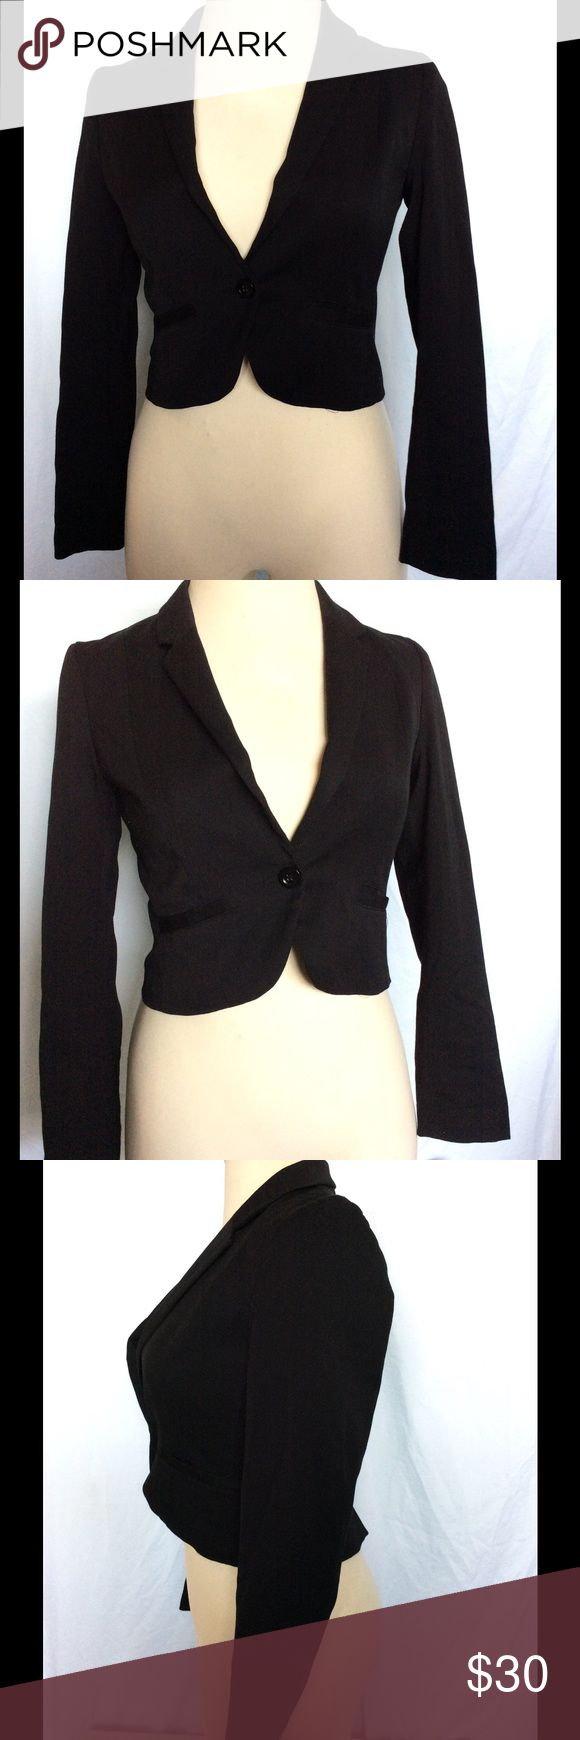 ZARA Basic Black Cropped Blazer Brand:  ZARA Basic   Type:  Blazer   Size:  10   Color:  Black  Measurements:  Arm 24 - Length 18 - Chest 17   Details:  cropped tuxedo style, one button closure   Condition:  Excellent.  No rips, stains or damages   Please ask any questions before buying.....Happy Shopping! Zara Jackets & Coats Blazers